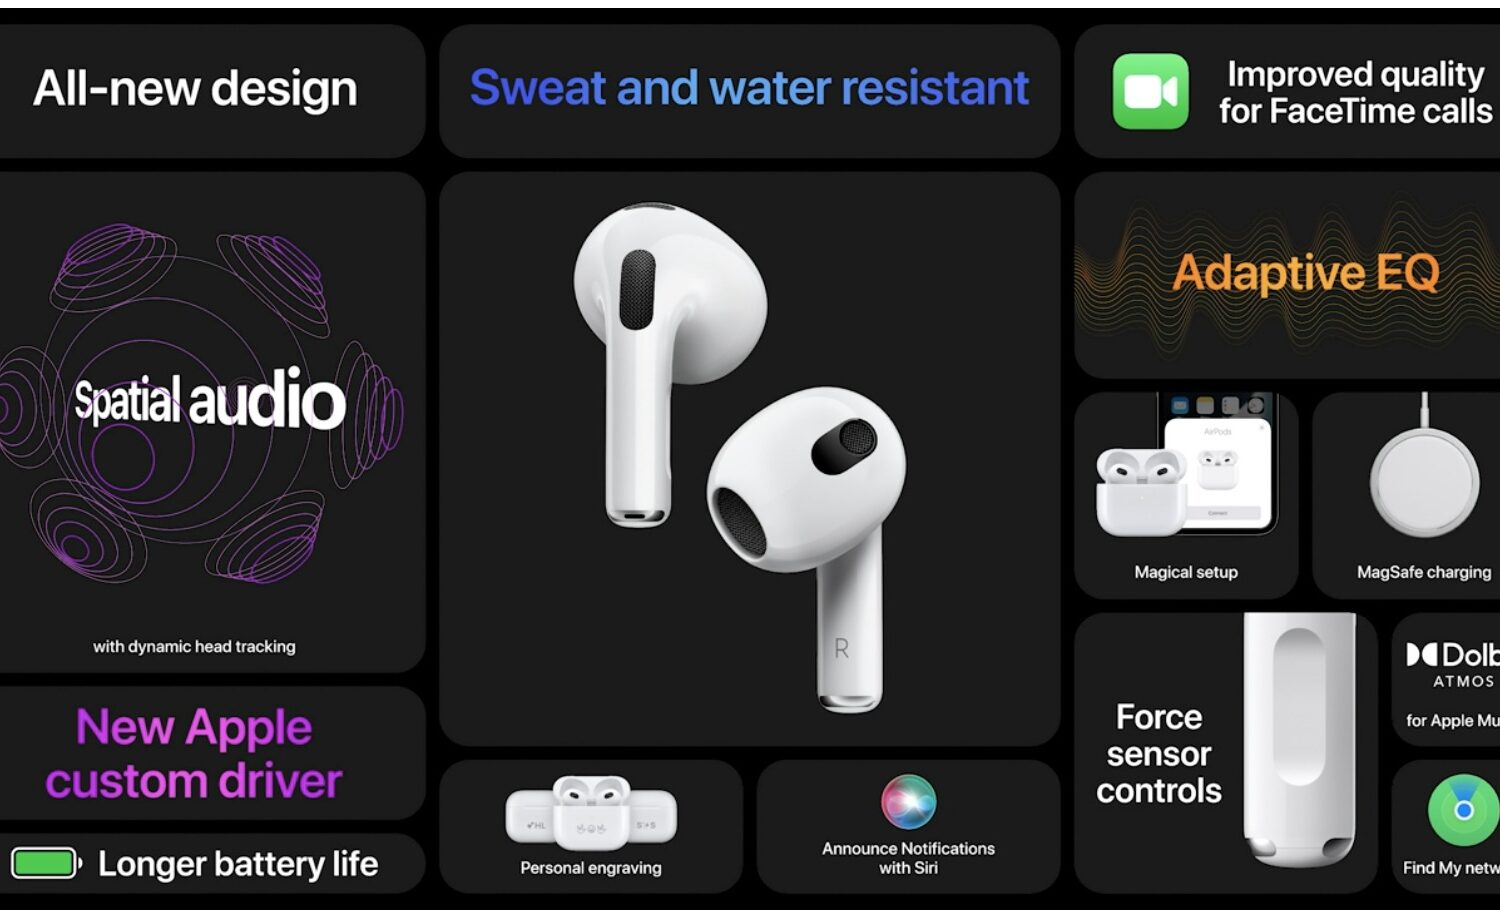 Apple's marketing image highlighting the key new features of AirPods 3